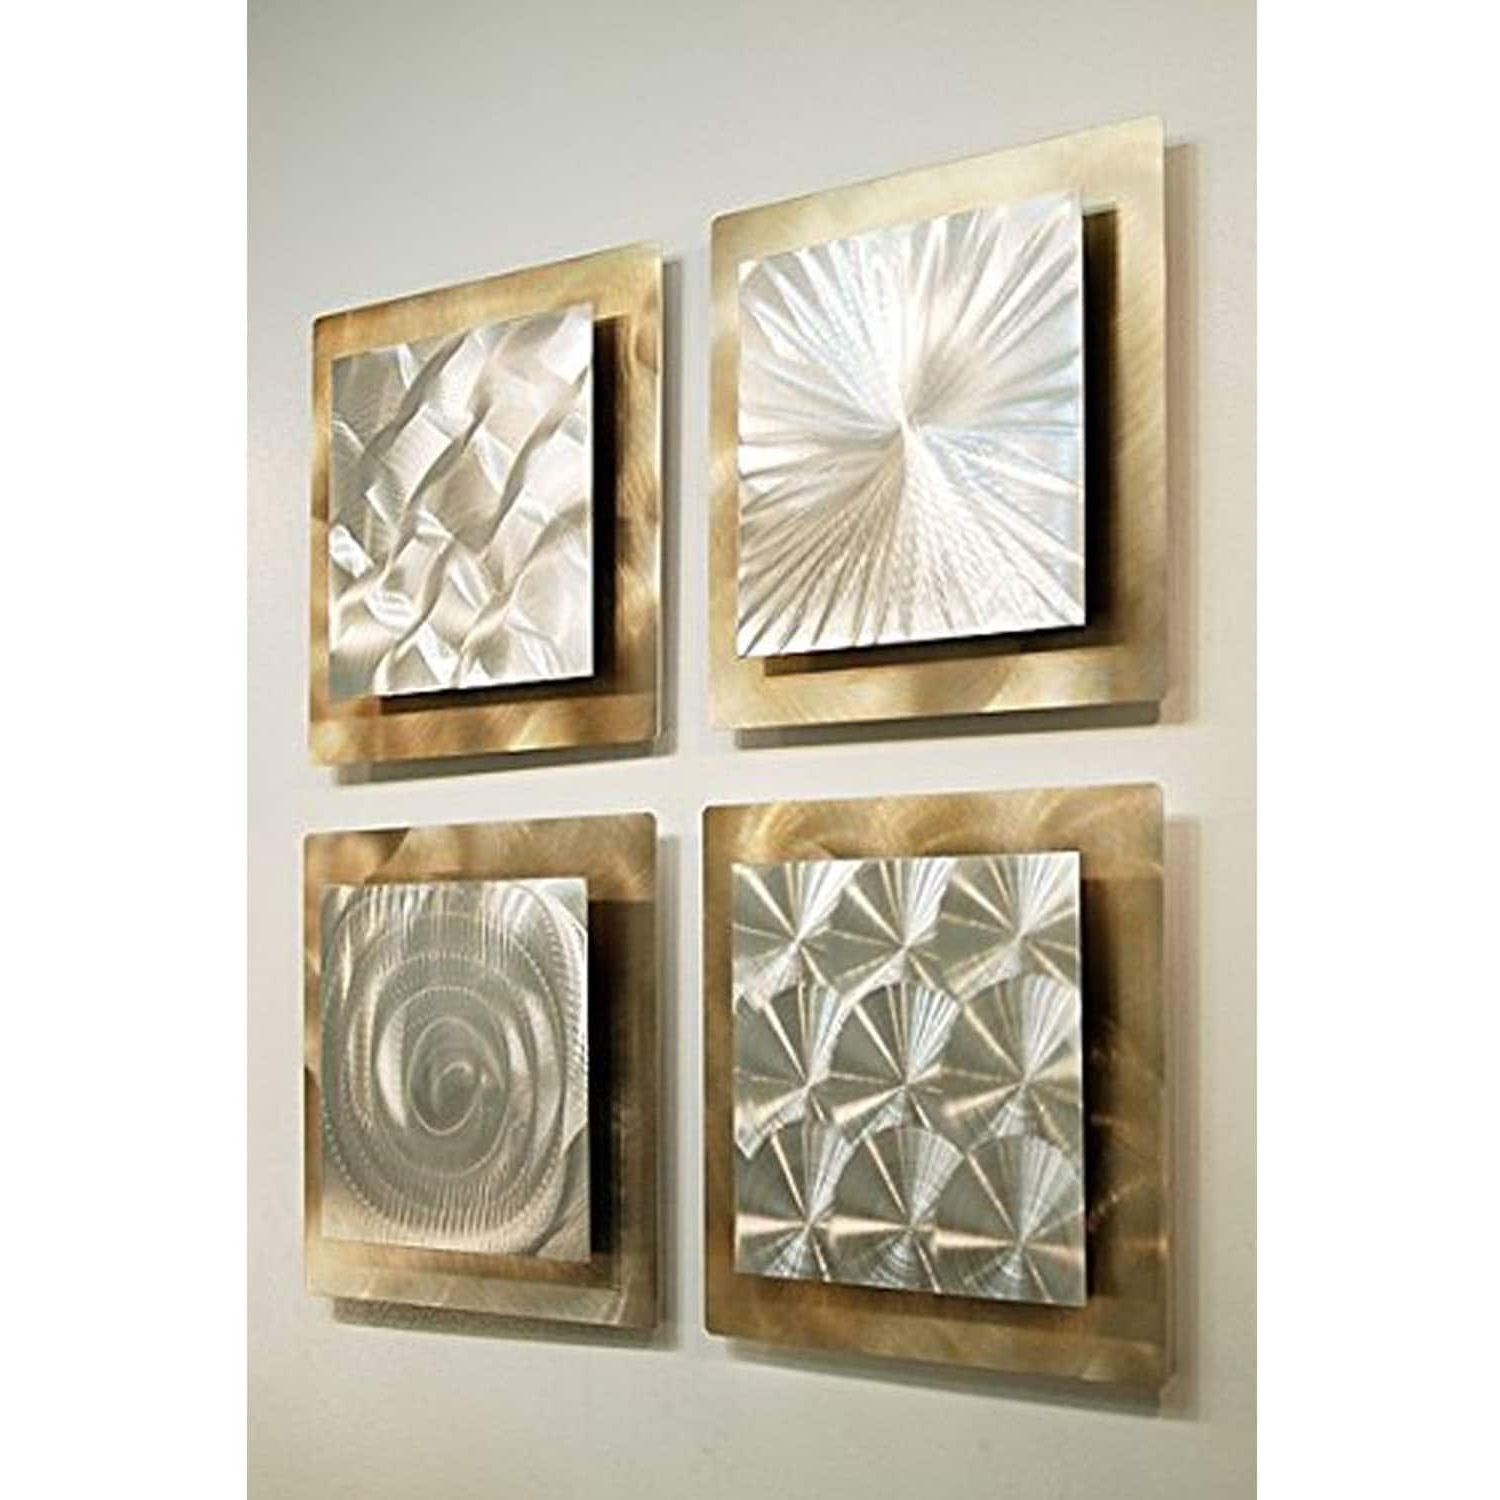 Wall Art Accents With Latest Statements2000 Set Of 4 Gold / Silver Metal Wall Art Accentjon (View 12 of 15)